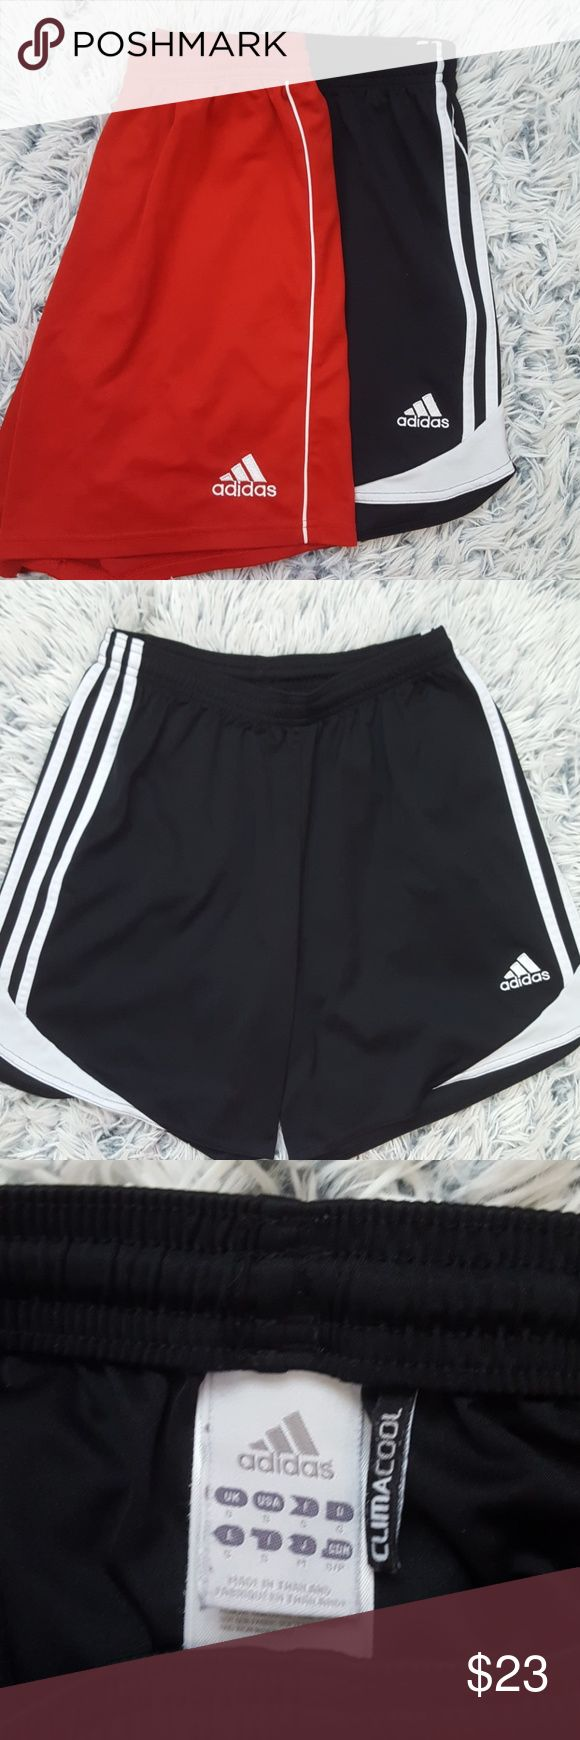 2 Adidas Soccer Shorts Bundle of - black climacool adidas shorts size Small -red climacool adidas shorts size XL in youth fits like women's  Small   Perfect for soccer or working out! Great condition! adidas Shorts